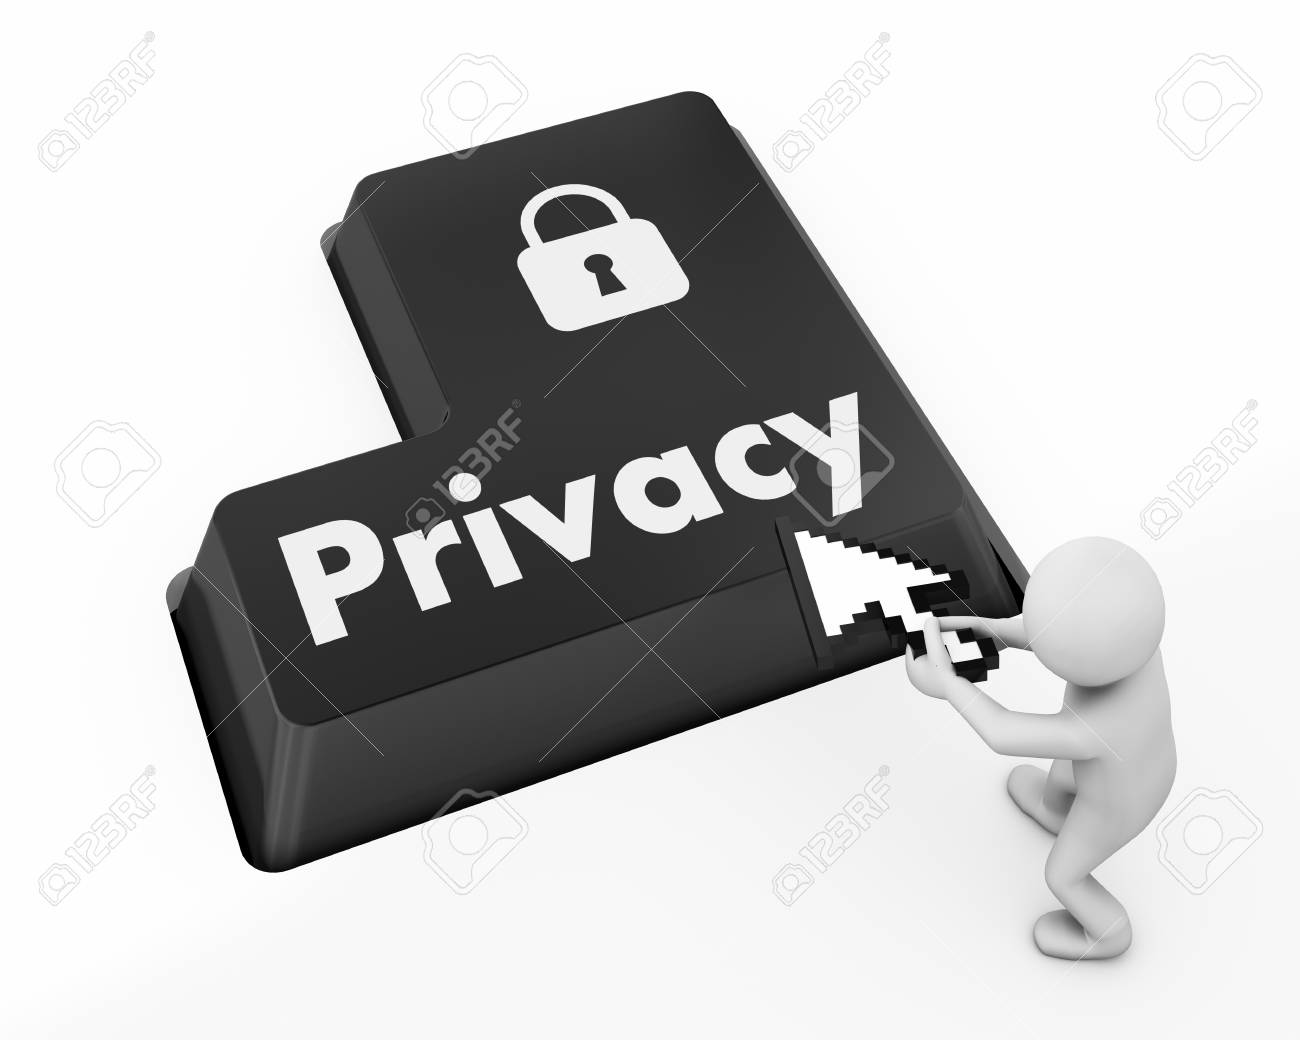 message on keyboard enter key, for privacy policy concepts Stock Photo - 30716302